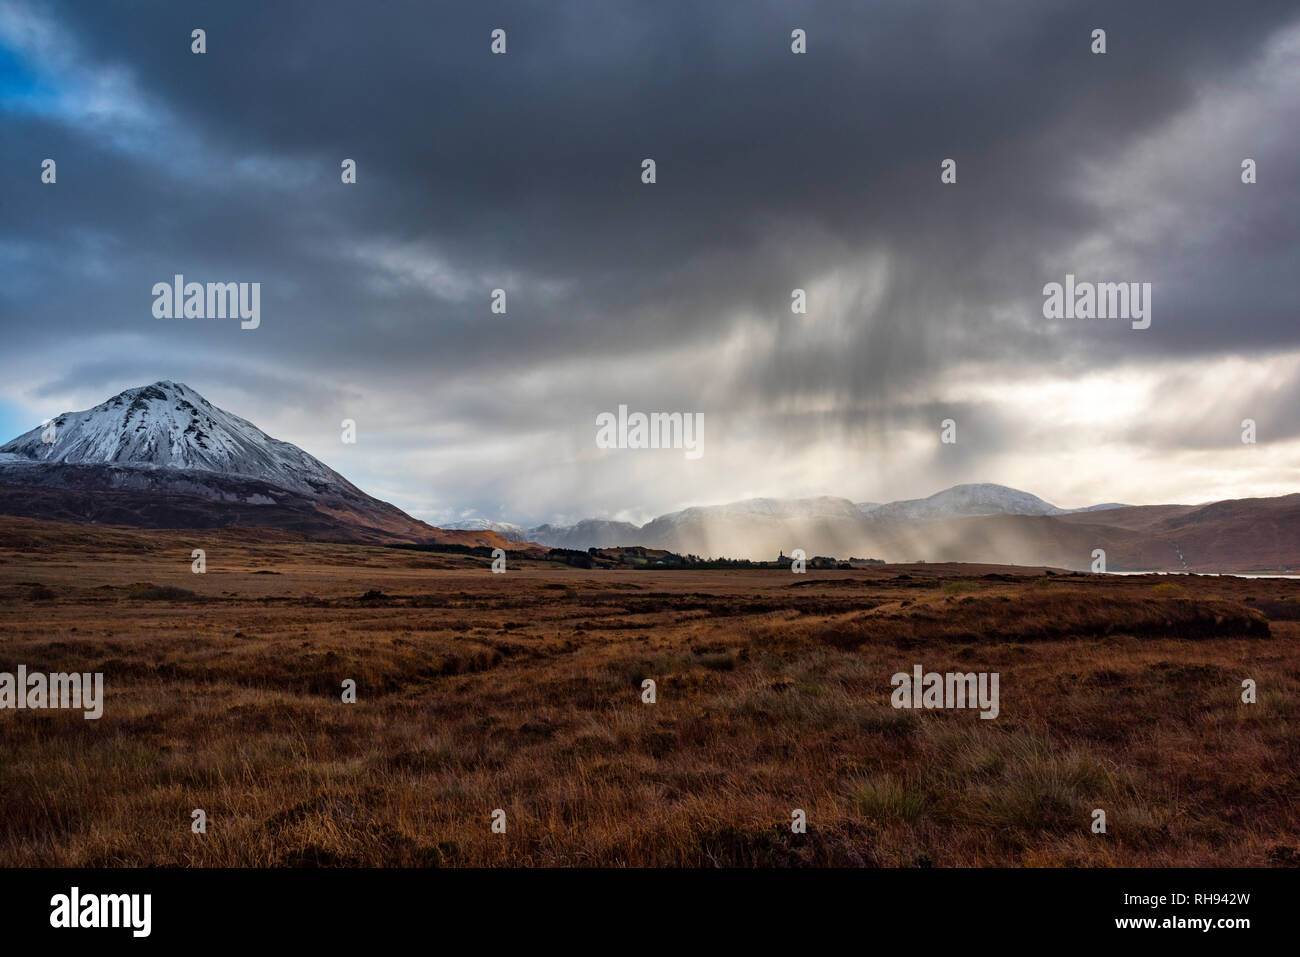 Snow clouds over Errigal Mountain at Dunlewey, Donegal, Ireland - Stock Image